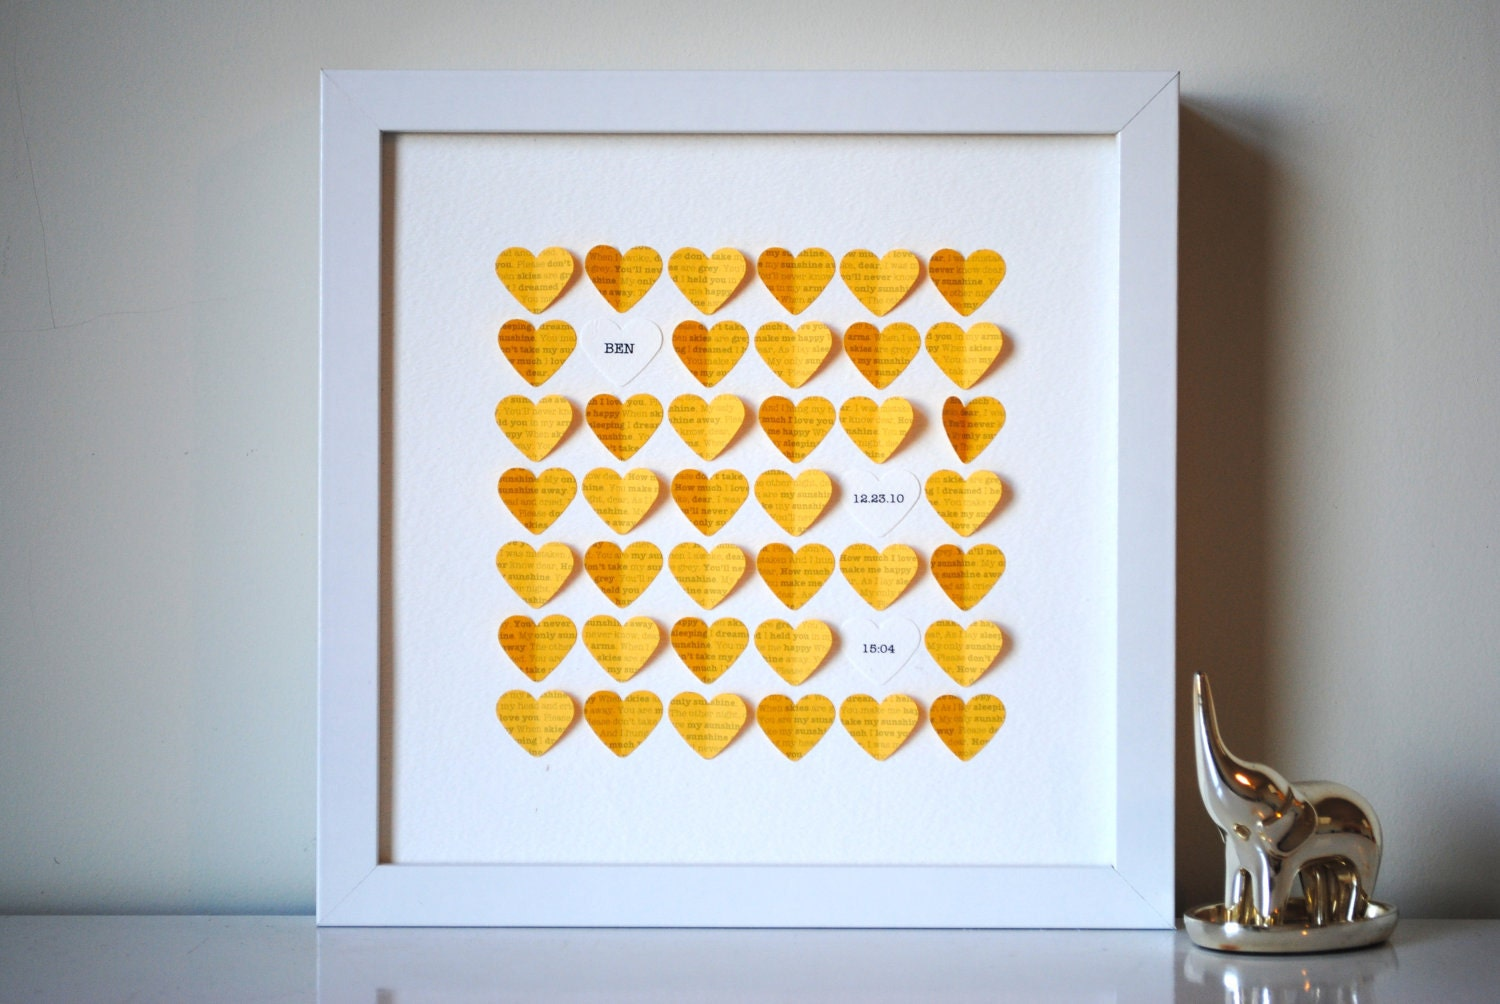 My First Room Toddler 3 Piece Room In A Box: Baby Gift Personalized Framed 3D You Are My Sunshine Song